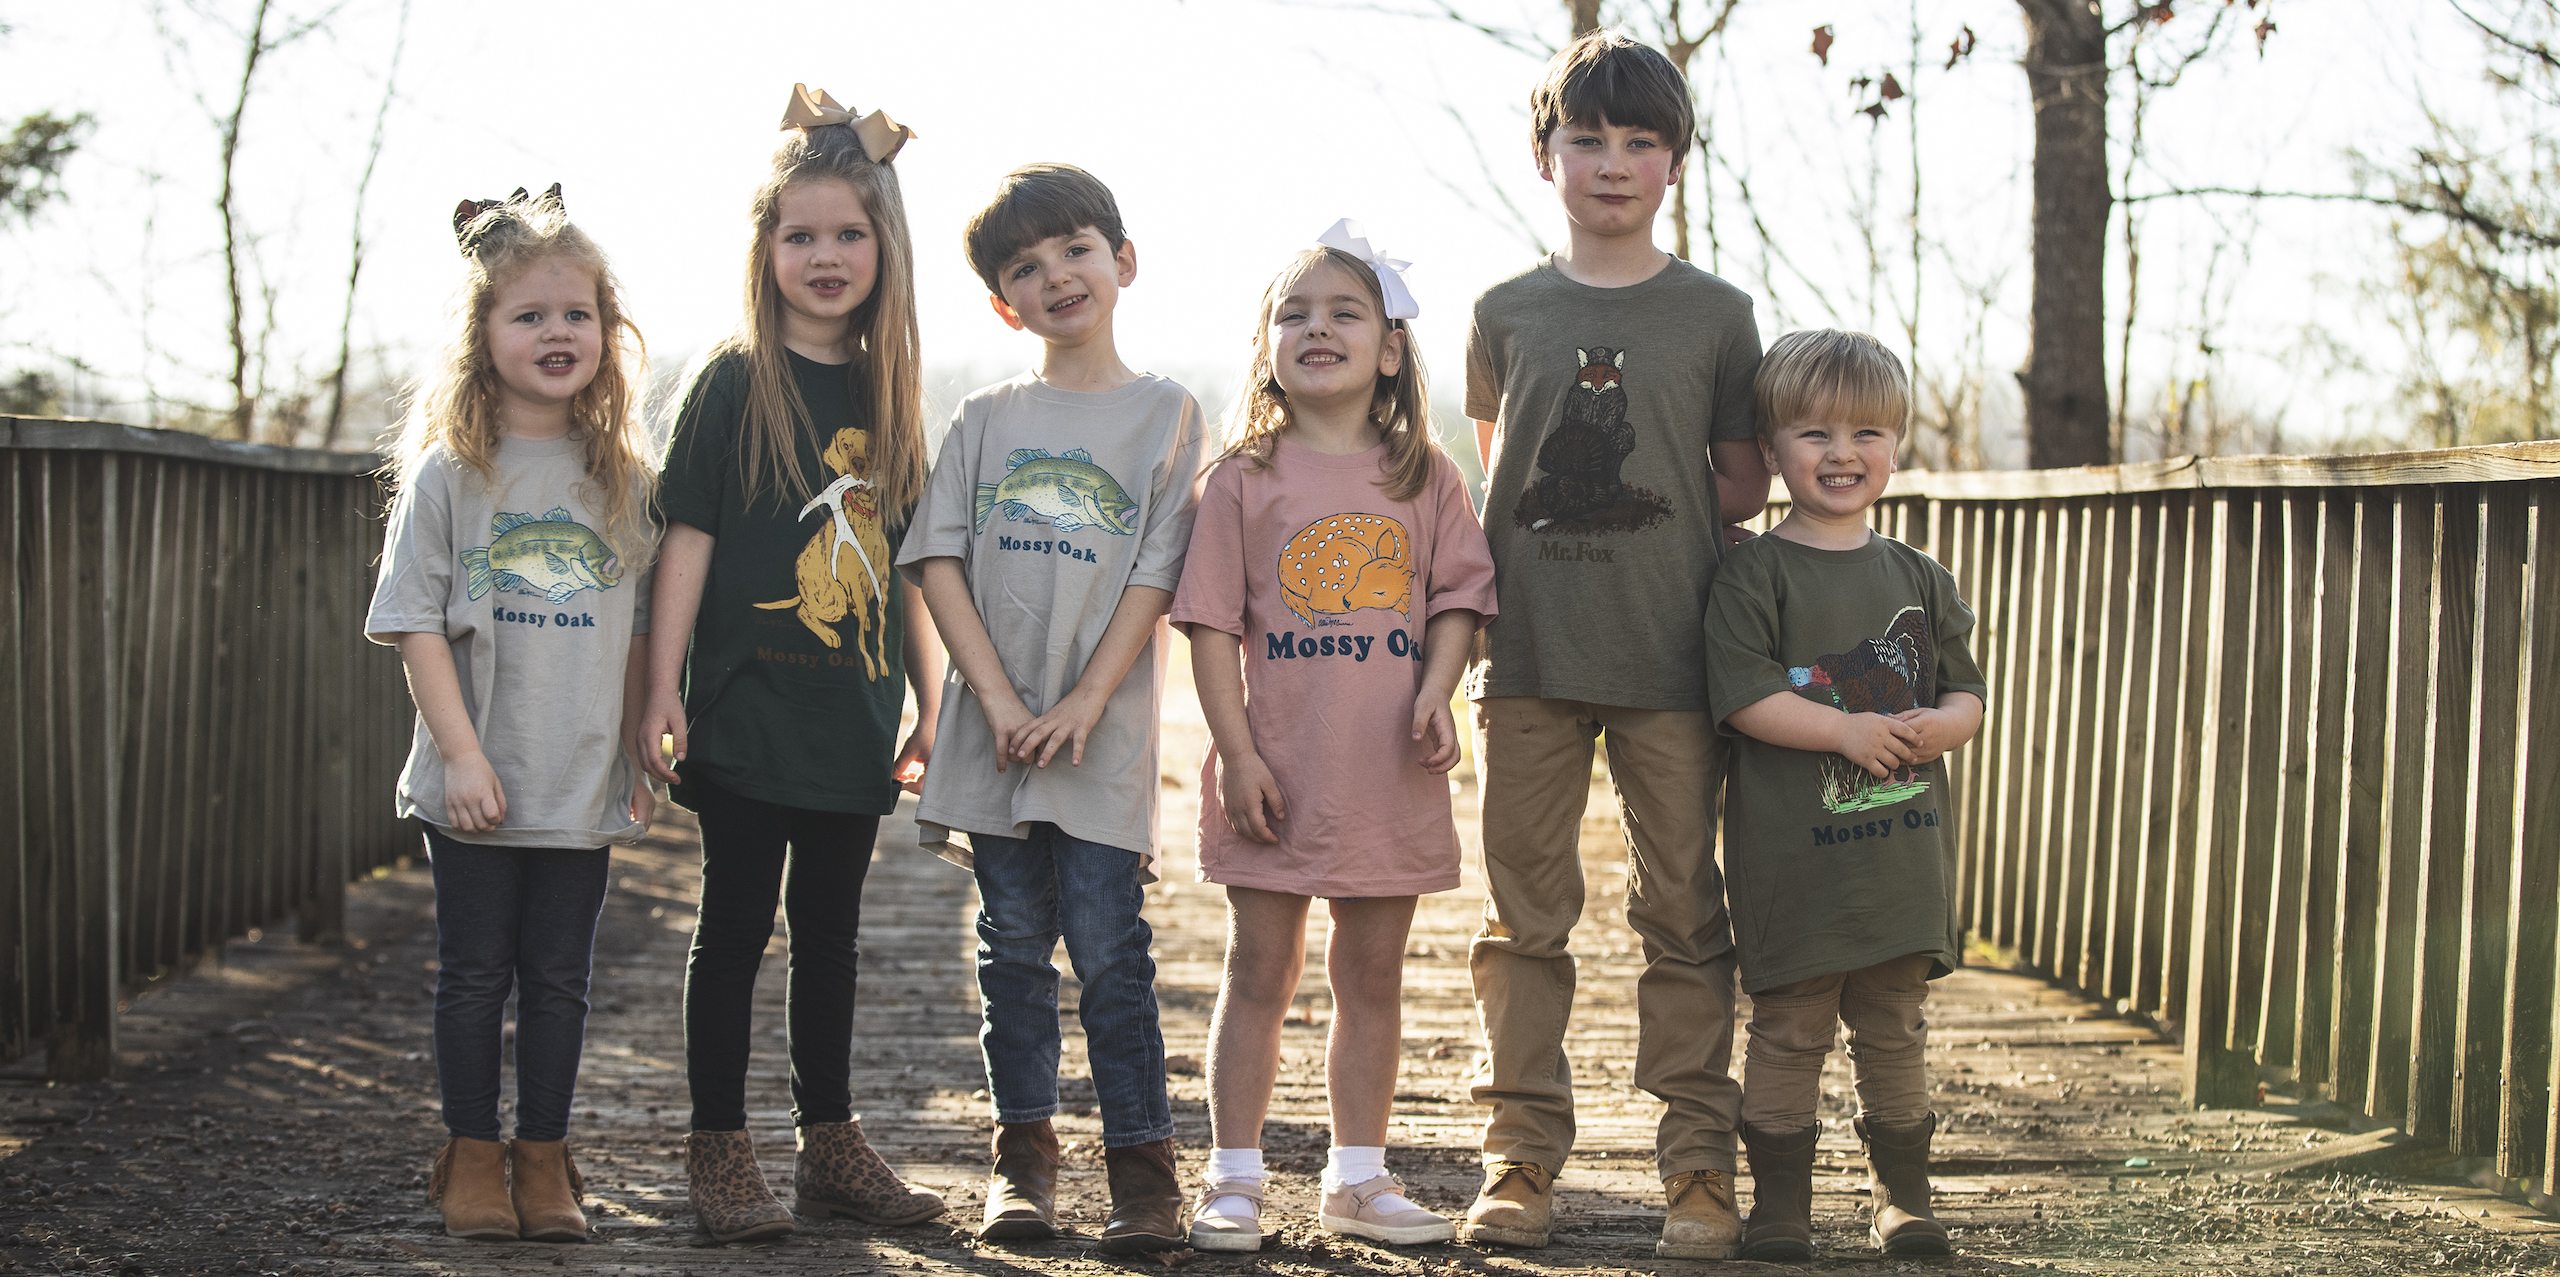 Young kids model various Mossy Oak T-shirts